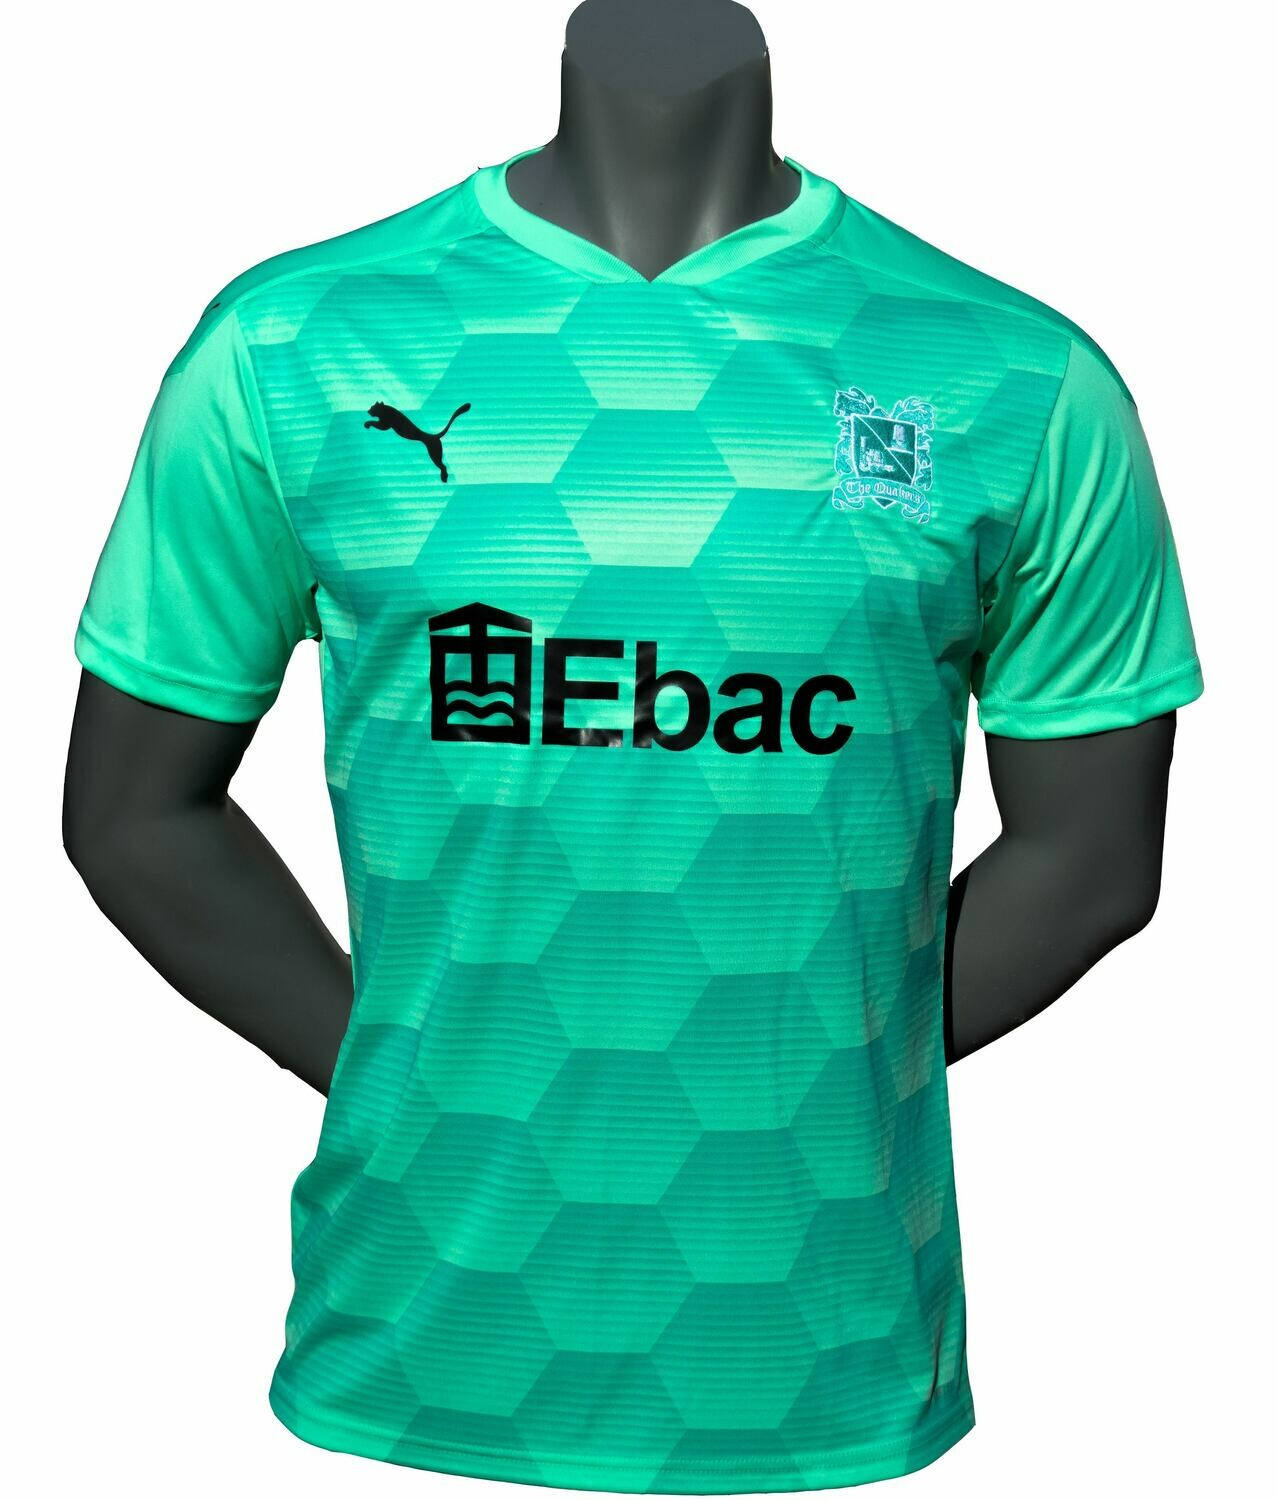 Puma Away Shirt 20/21 Adult (Pre-Order)